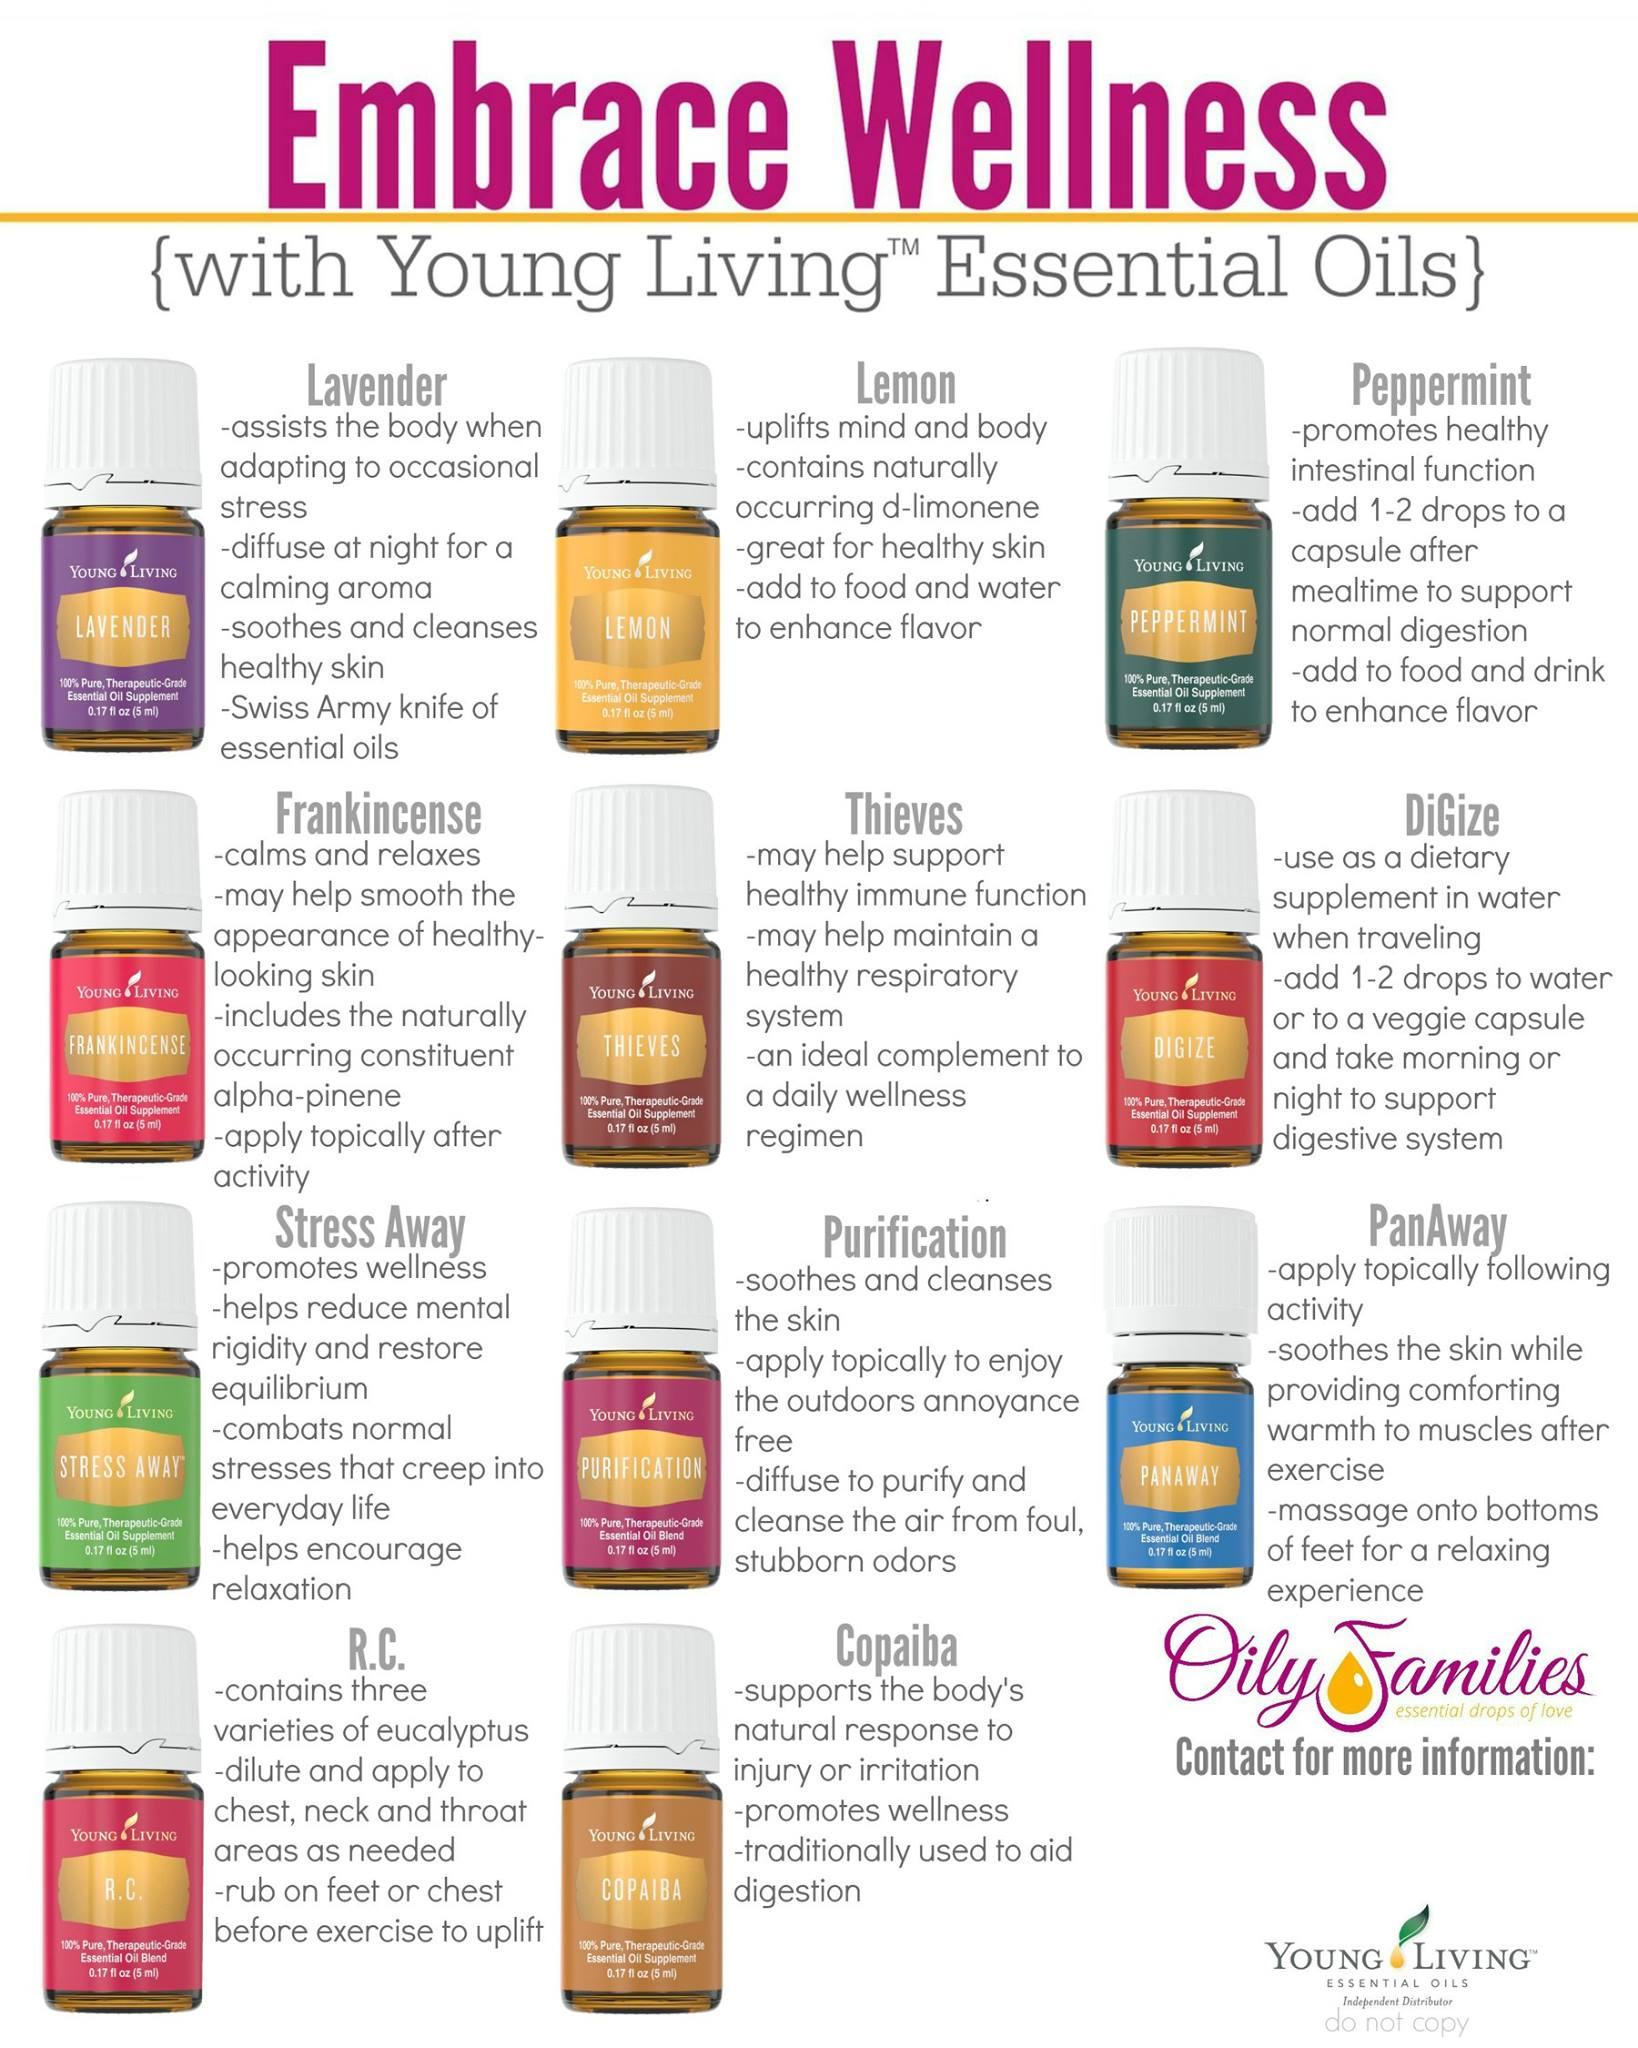 How to Get Young Living Essential Oils for 24% off retail PLUS extra freebies!